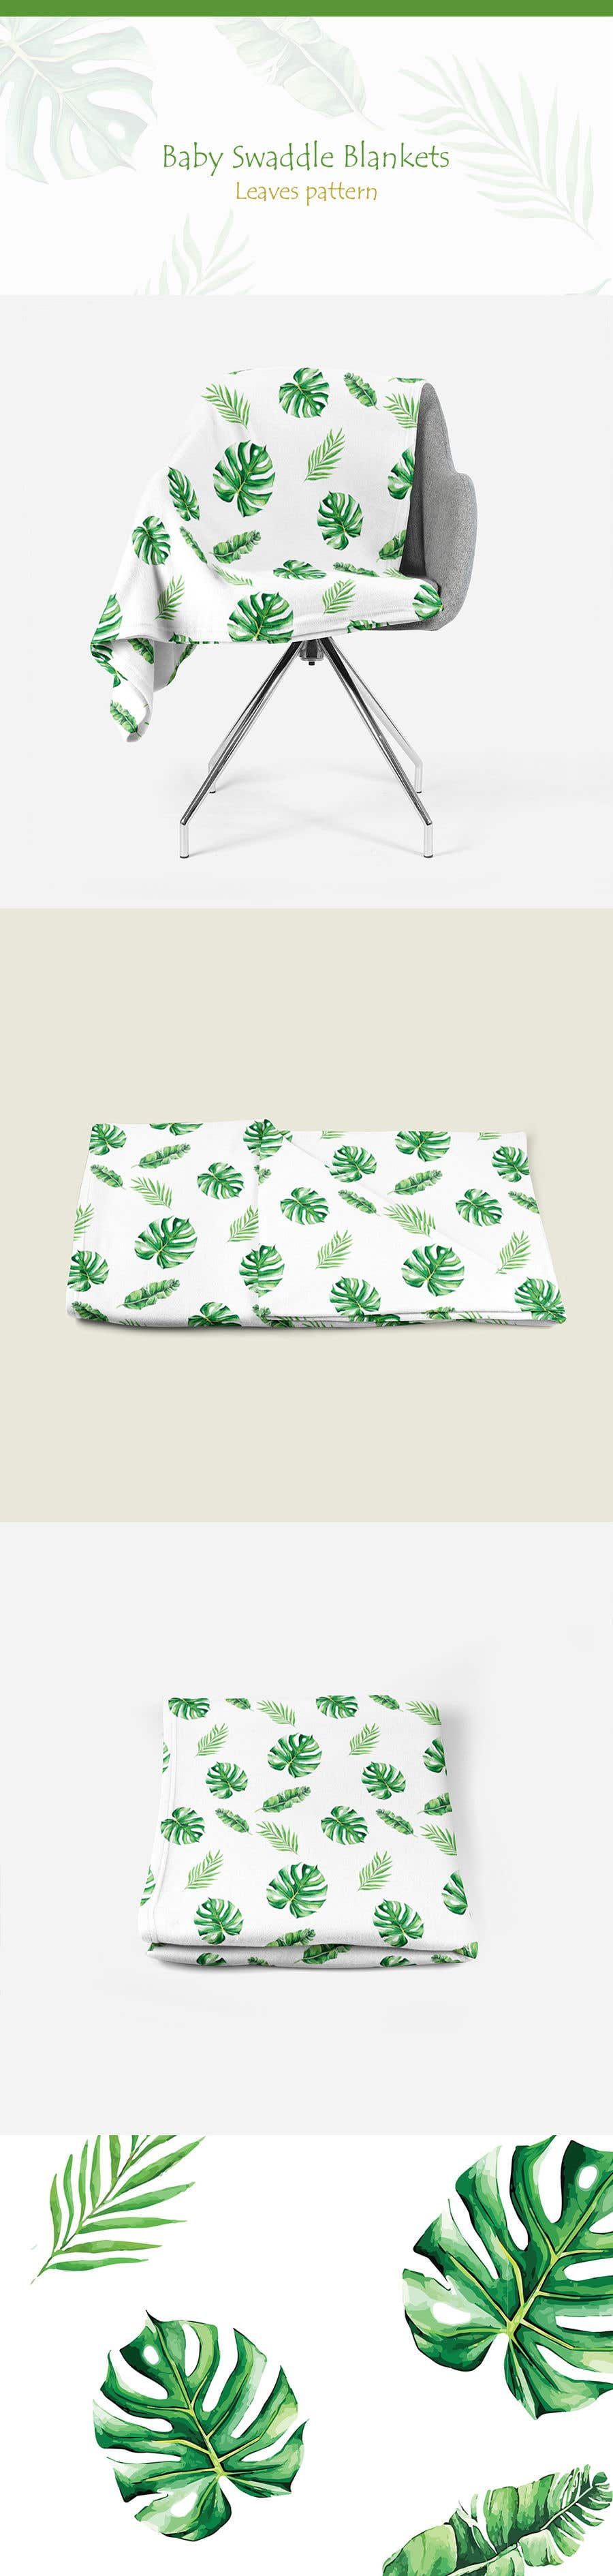 Proposition n°129 du concours Design 3 Baby Swaddle Blankets